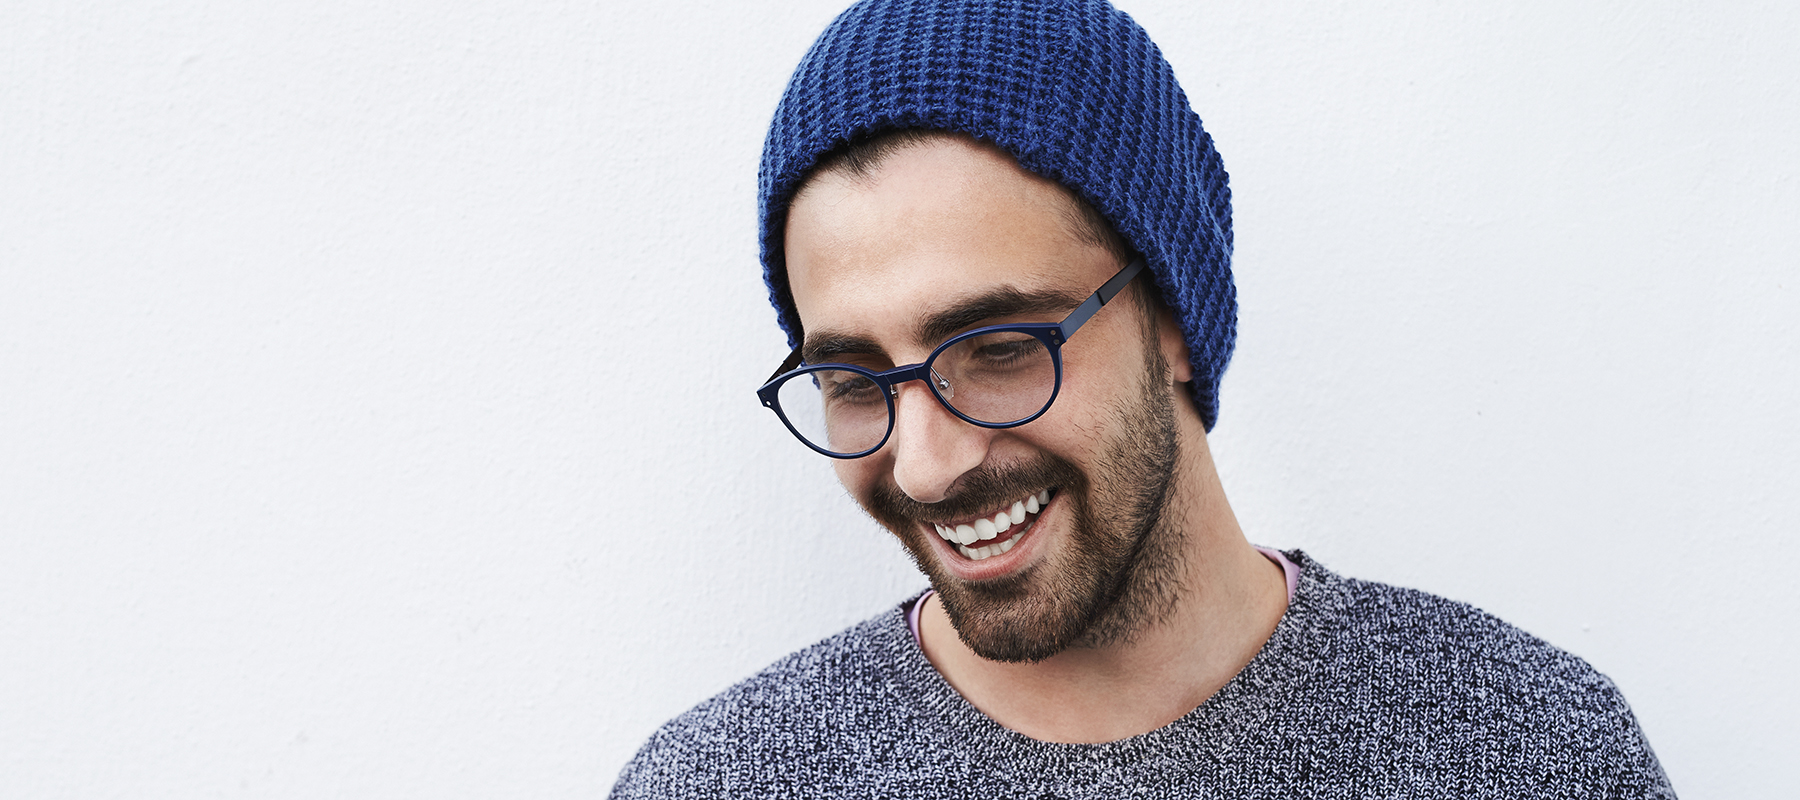 Laumen Optik: Mann mit Brille